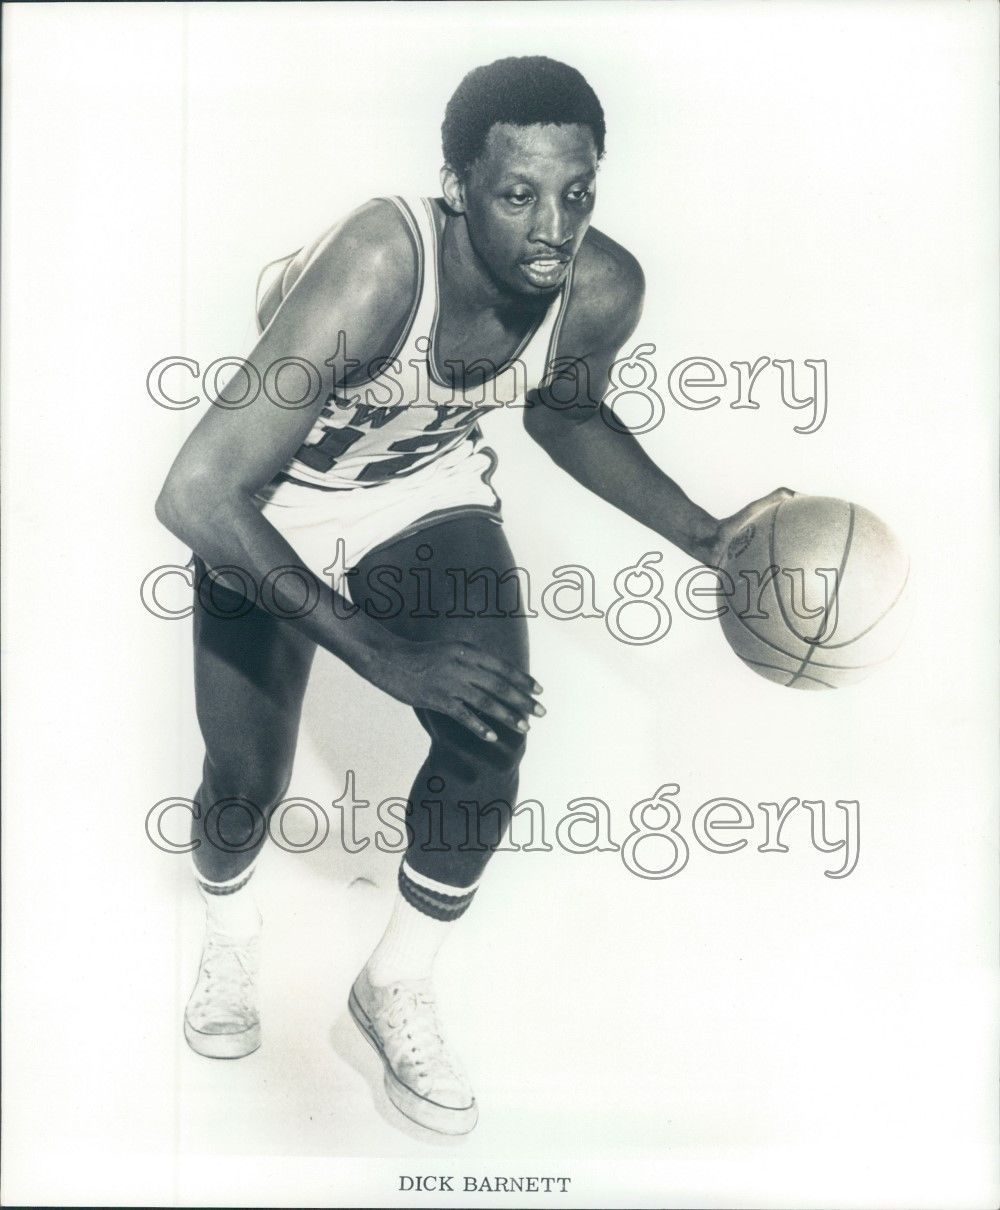 NBA New York Knicks Basketball Player Dick Barnett Press